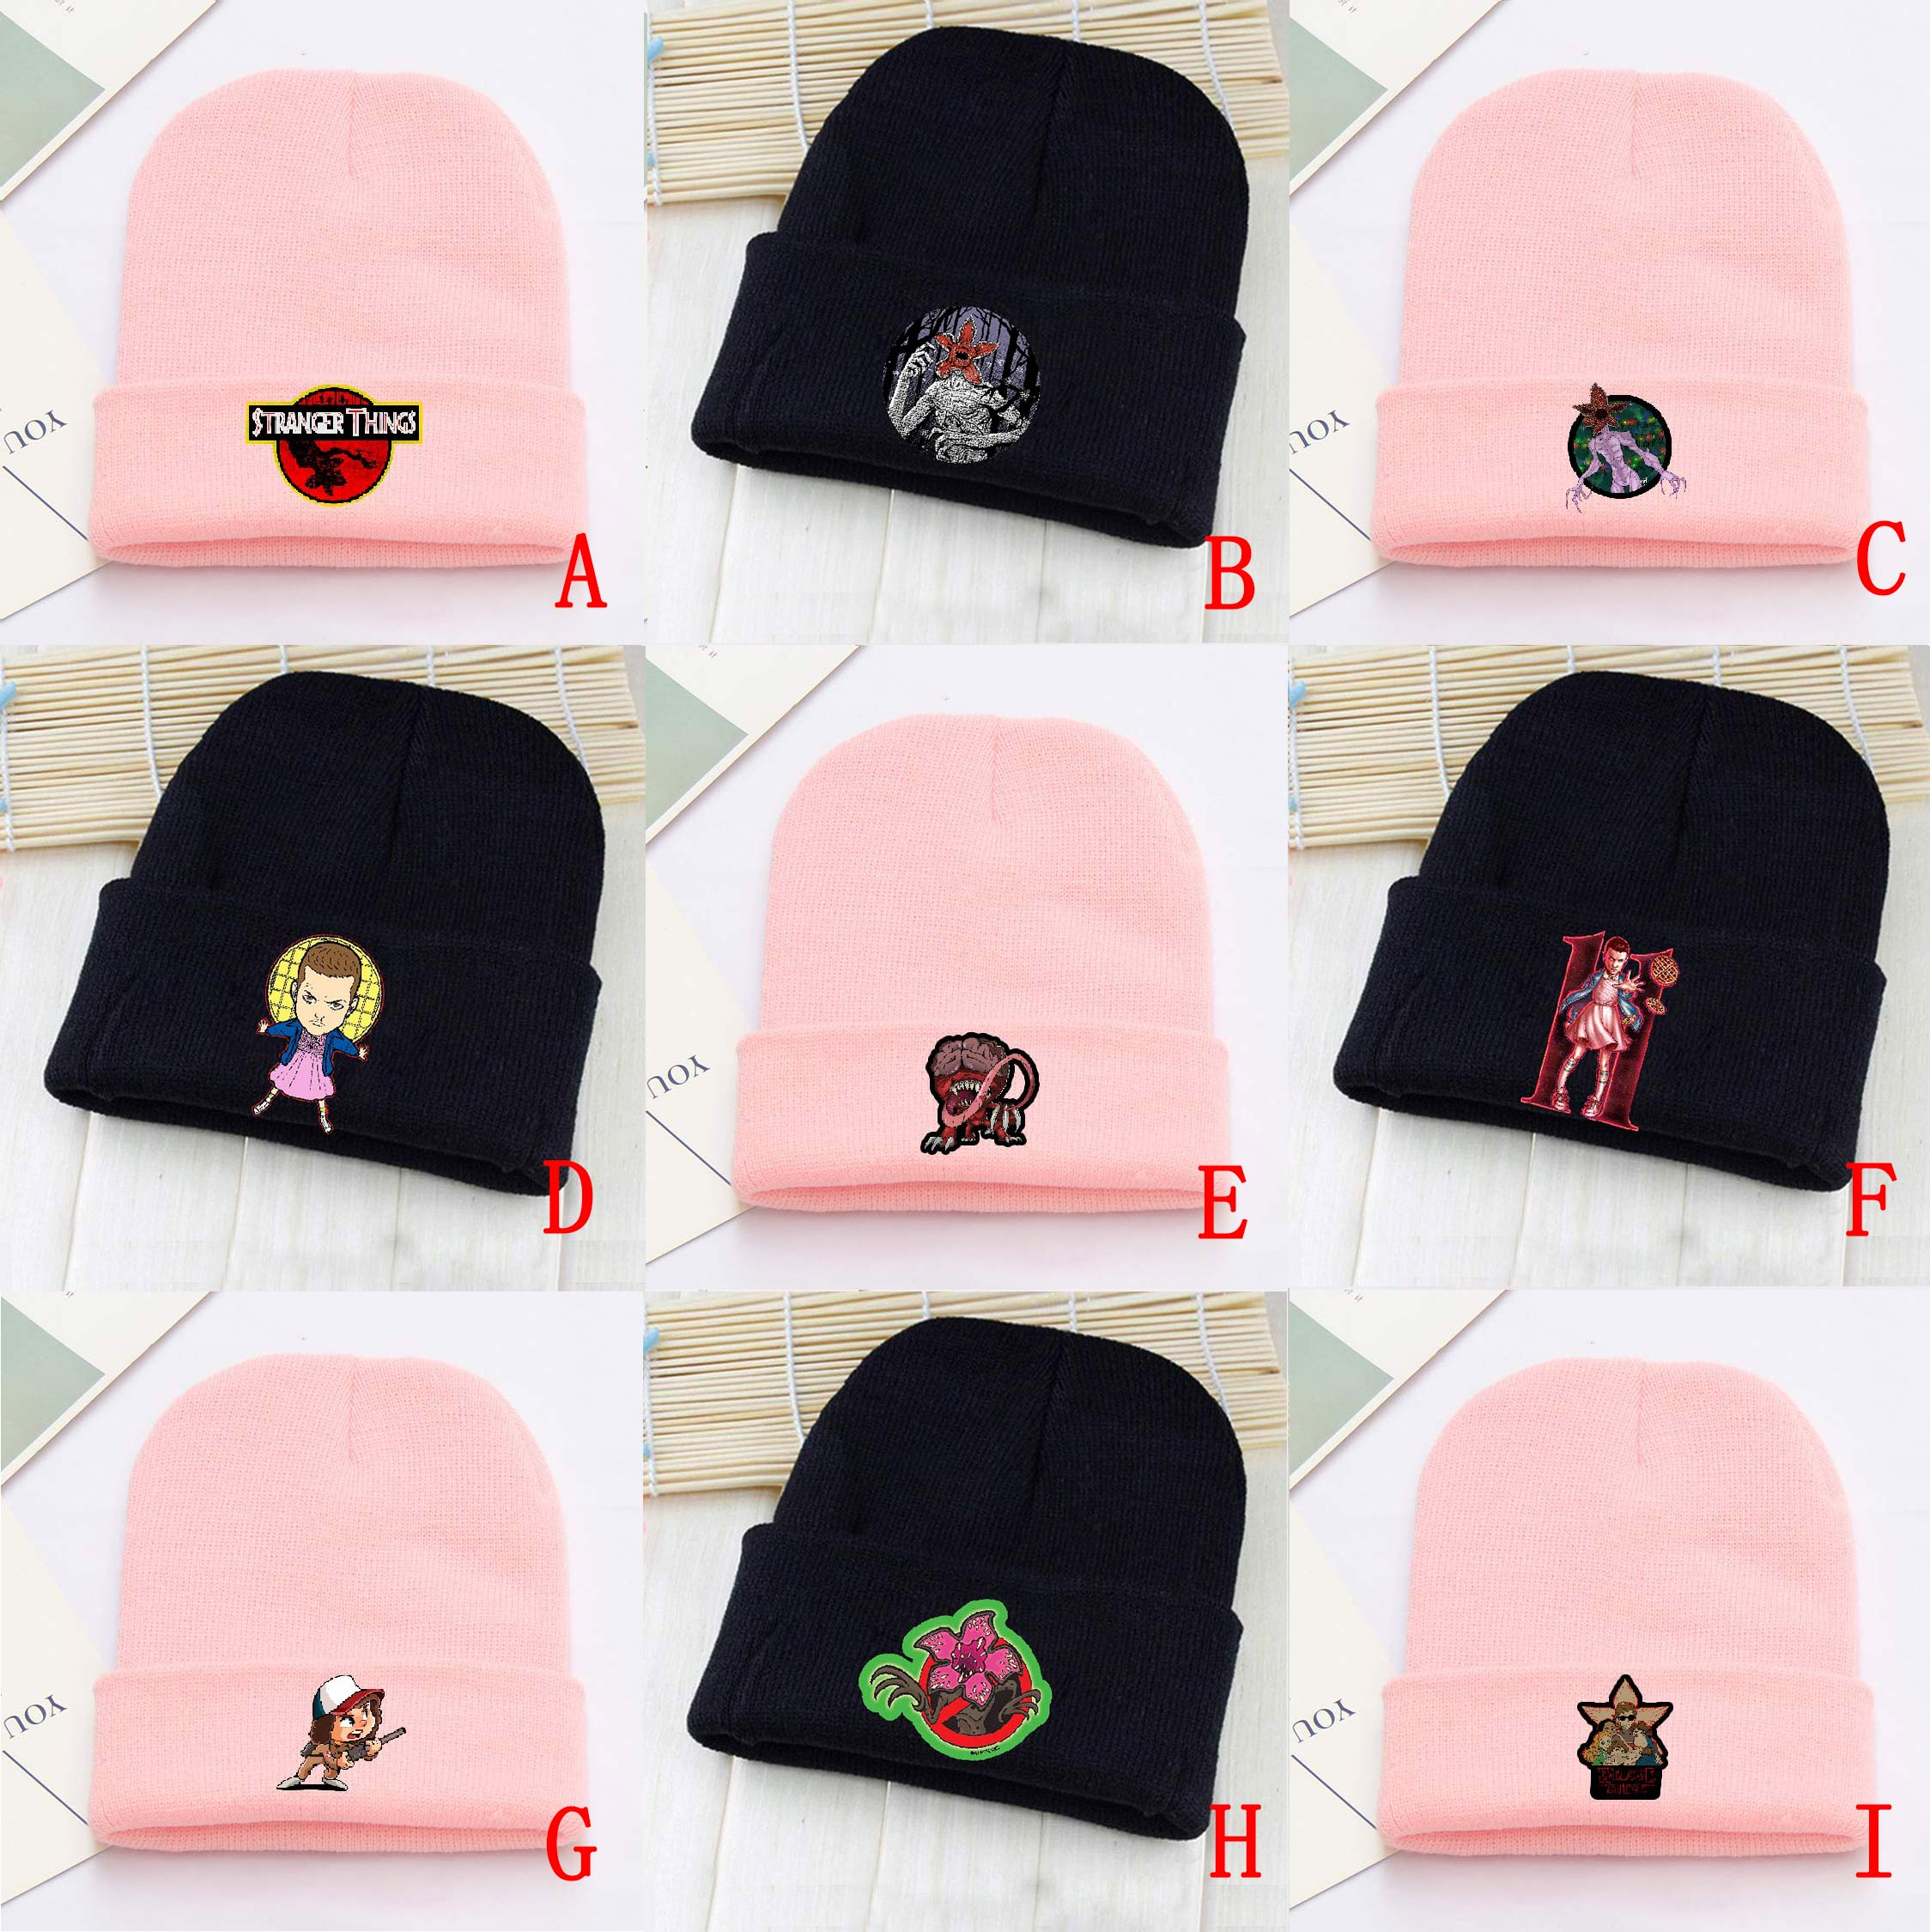 OHCOMICS Hot Stranger Things Pink Black Cotton Hat Knitted Hat Cap Hip-Hop Handsome Sleeve Cap Costume Accessory Gift